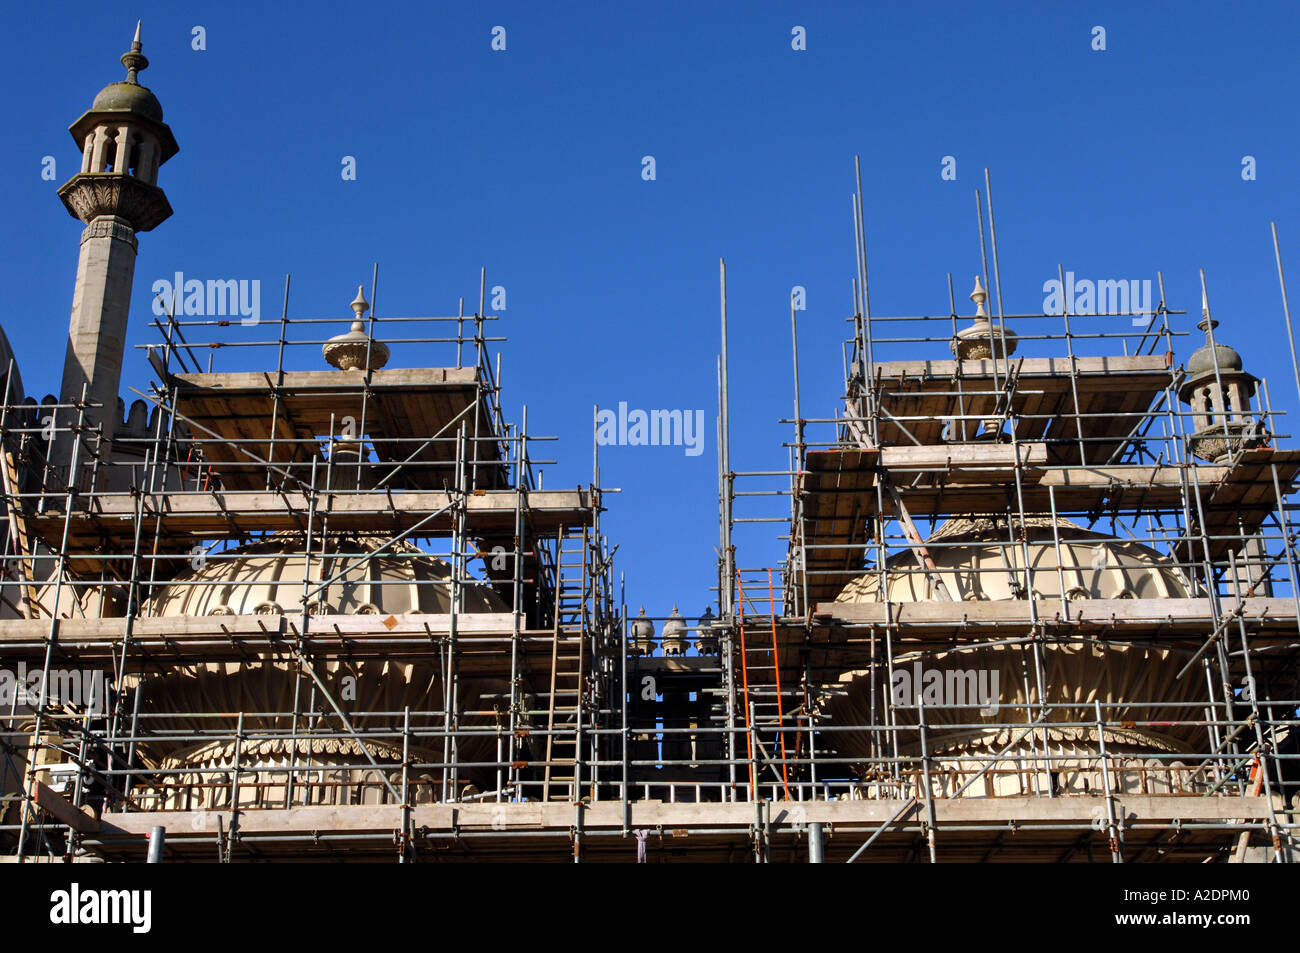 The domes of the Prince Regents Palace The Royal Pavilion Brighton East Sussex are covered in scaffolding for stonework repairs - Stock Image